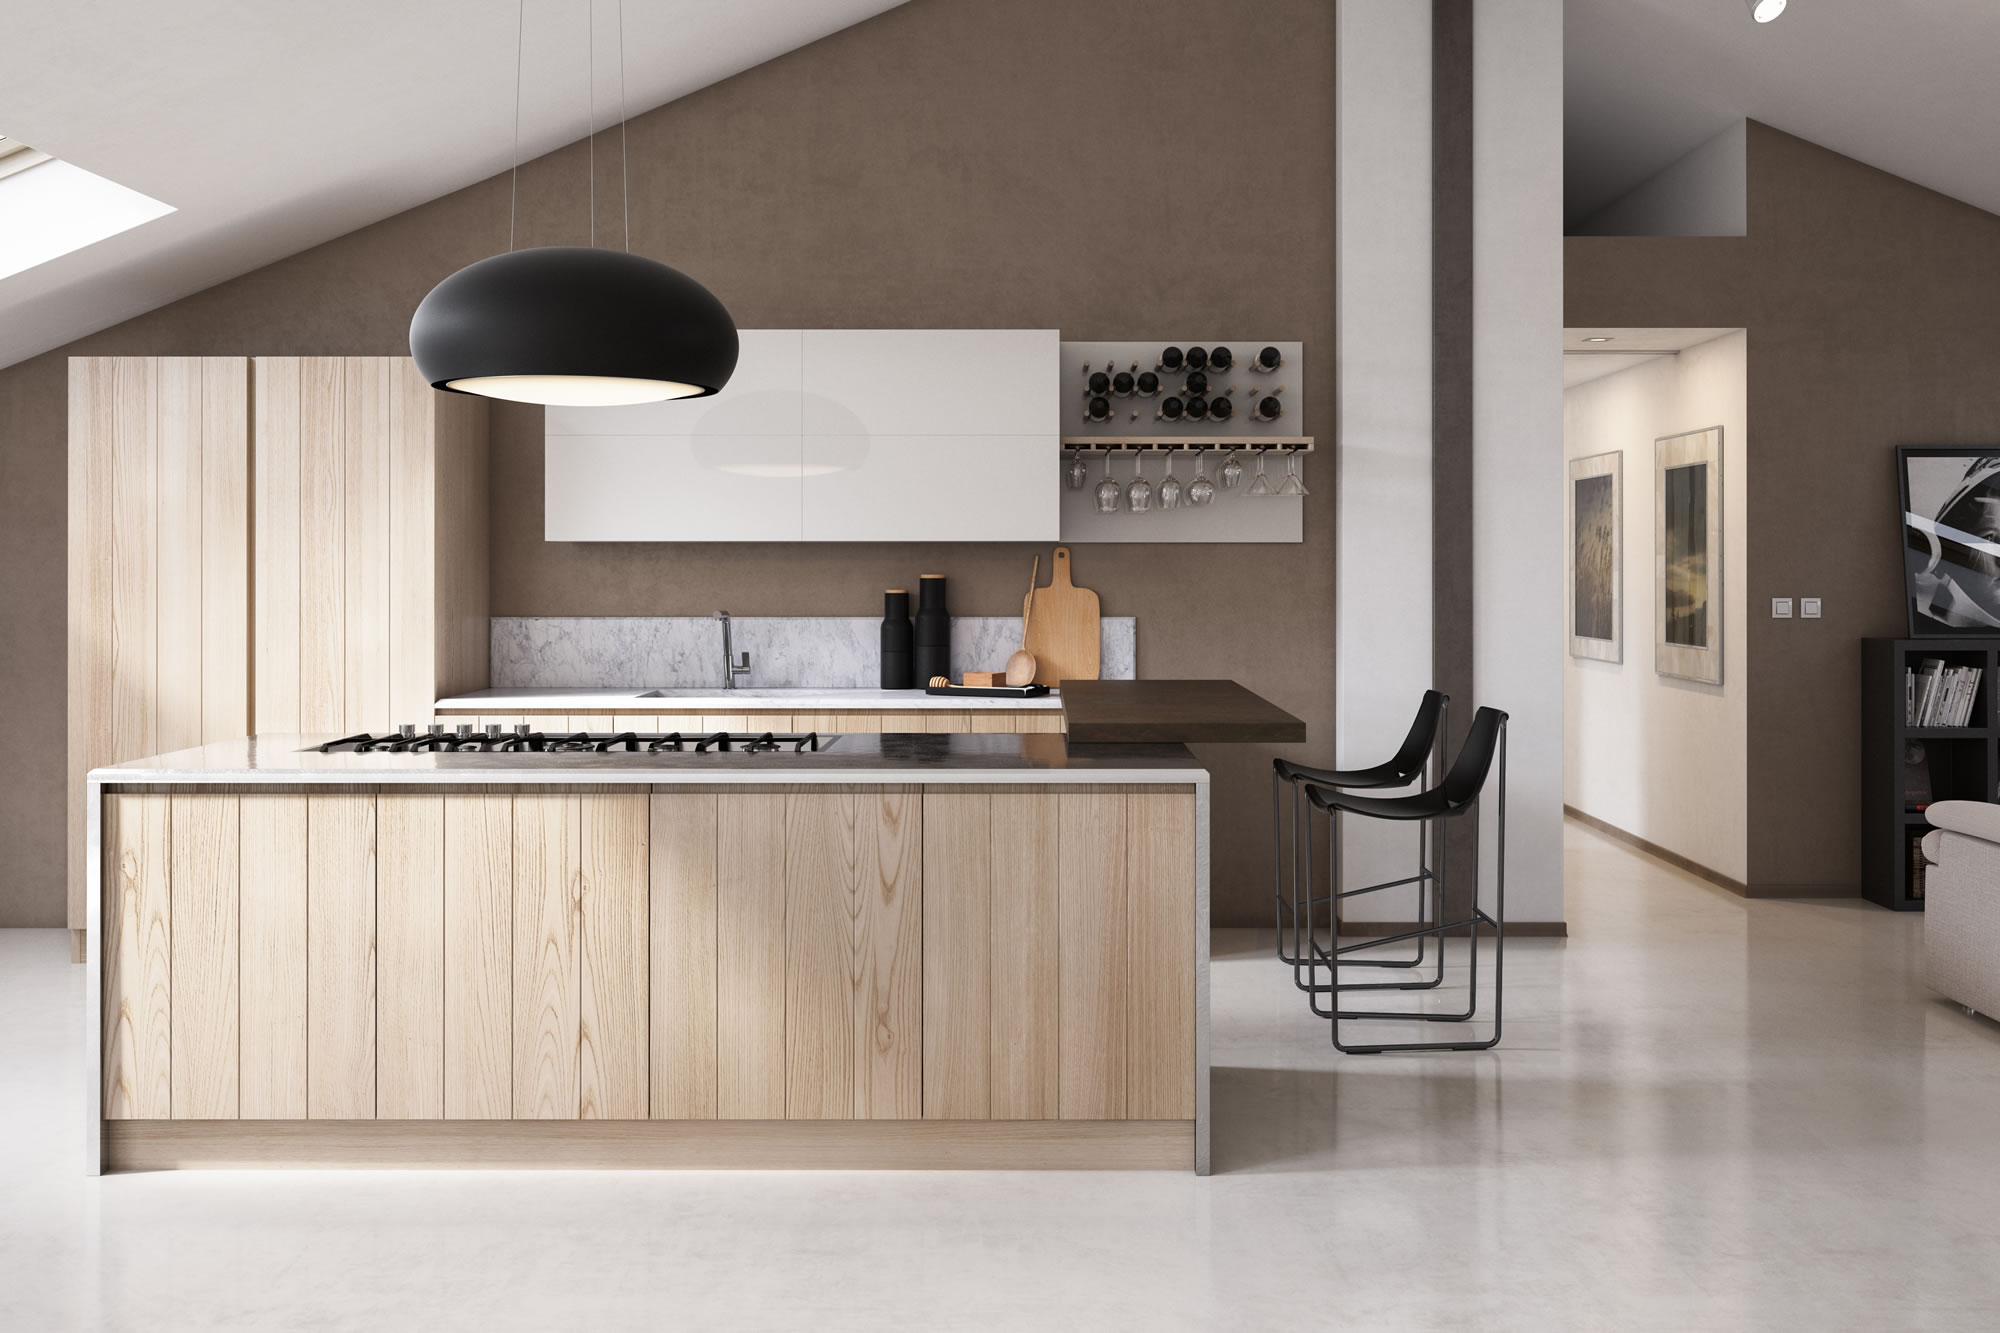 Awesome Cucine Di Legno Contemporary - Ideas & Design 2017 ...